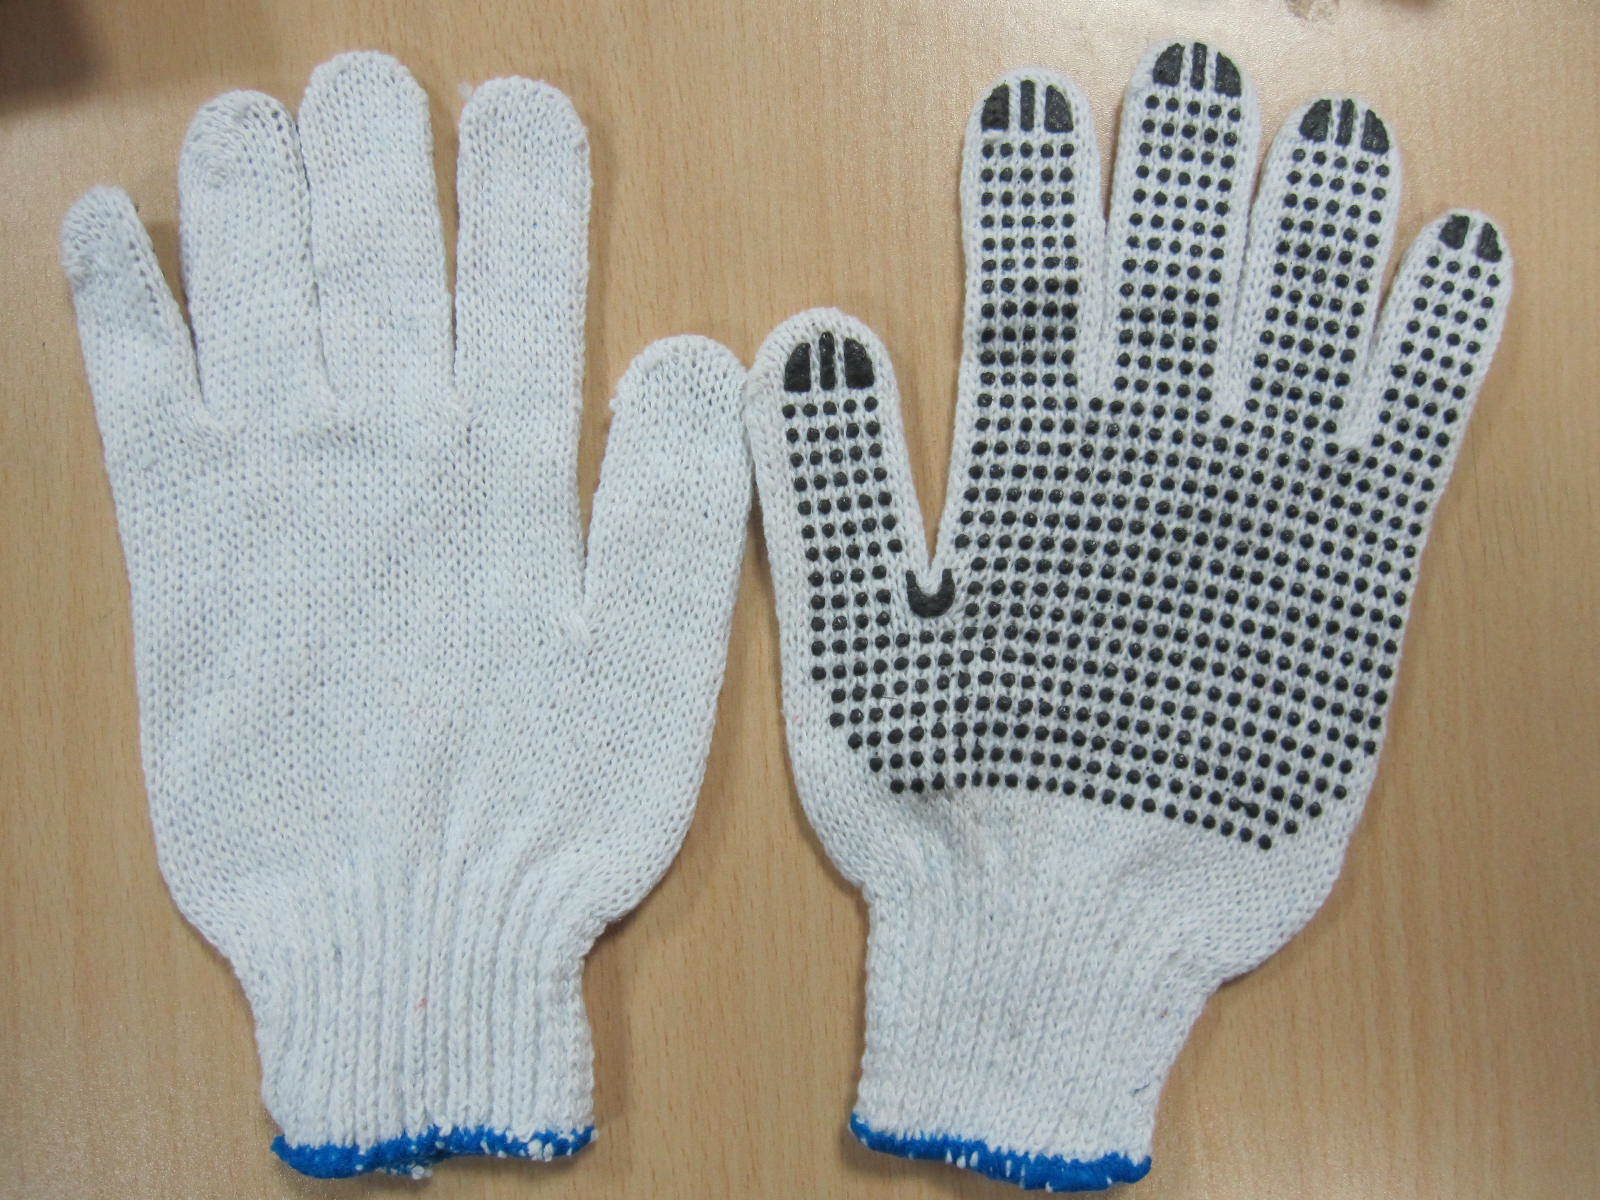 Cotton Glove Safety Glove Cheap Working Glove